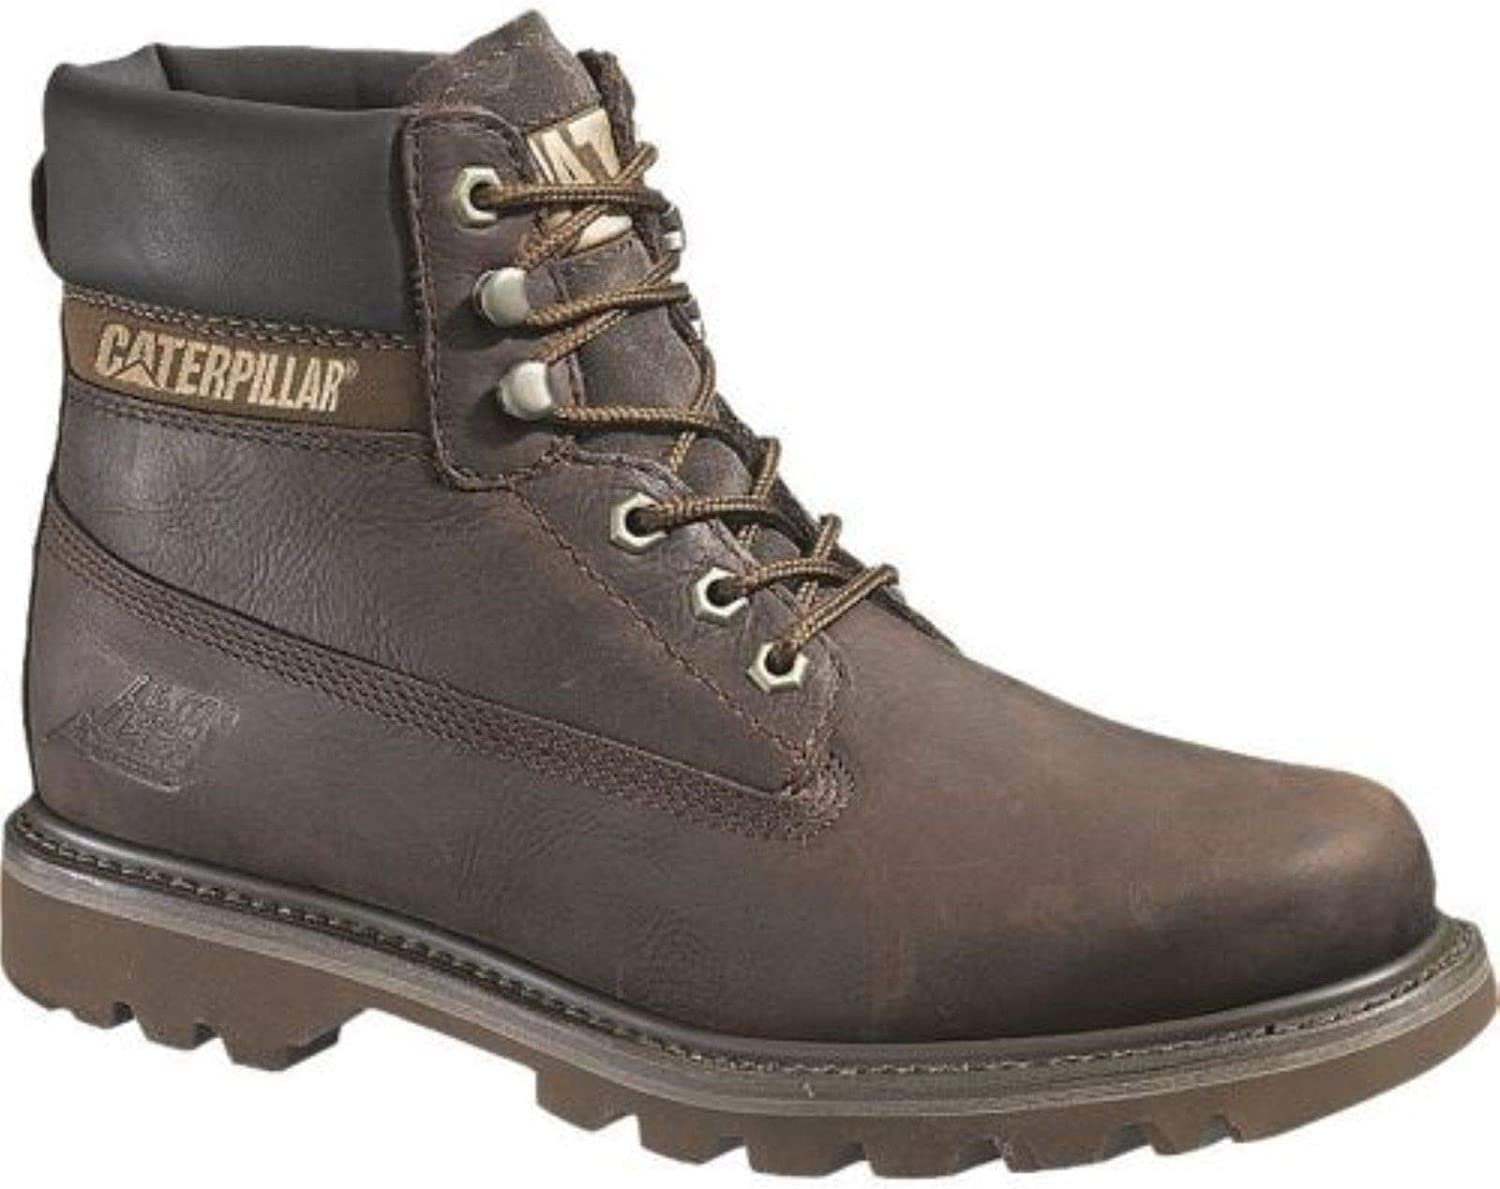 Caterpillar colorado Mens Chocolate Brown Leather Upper Lace Up Ankle Boots